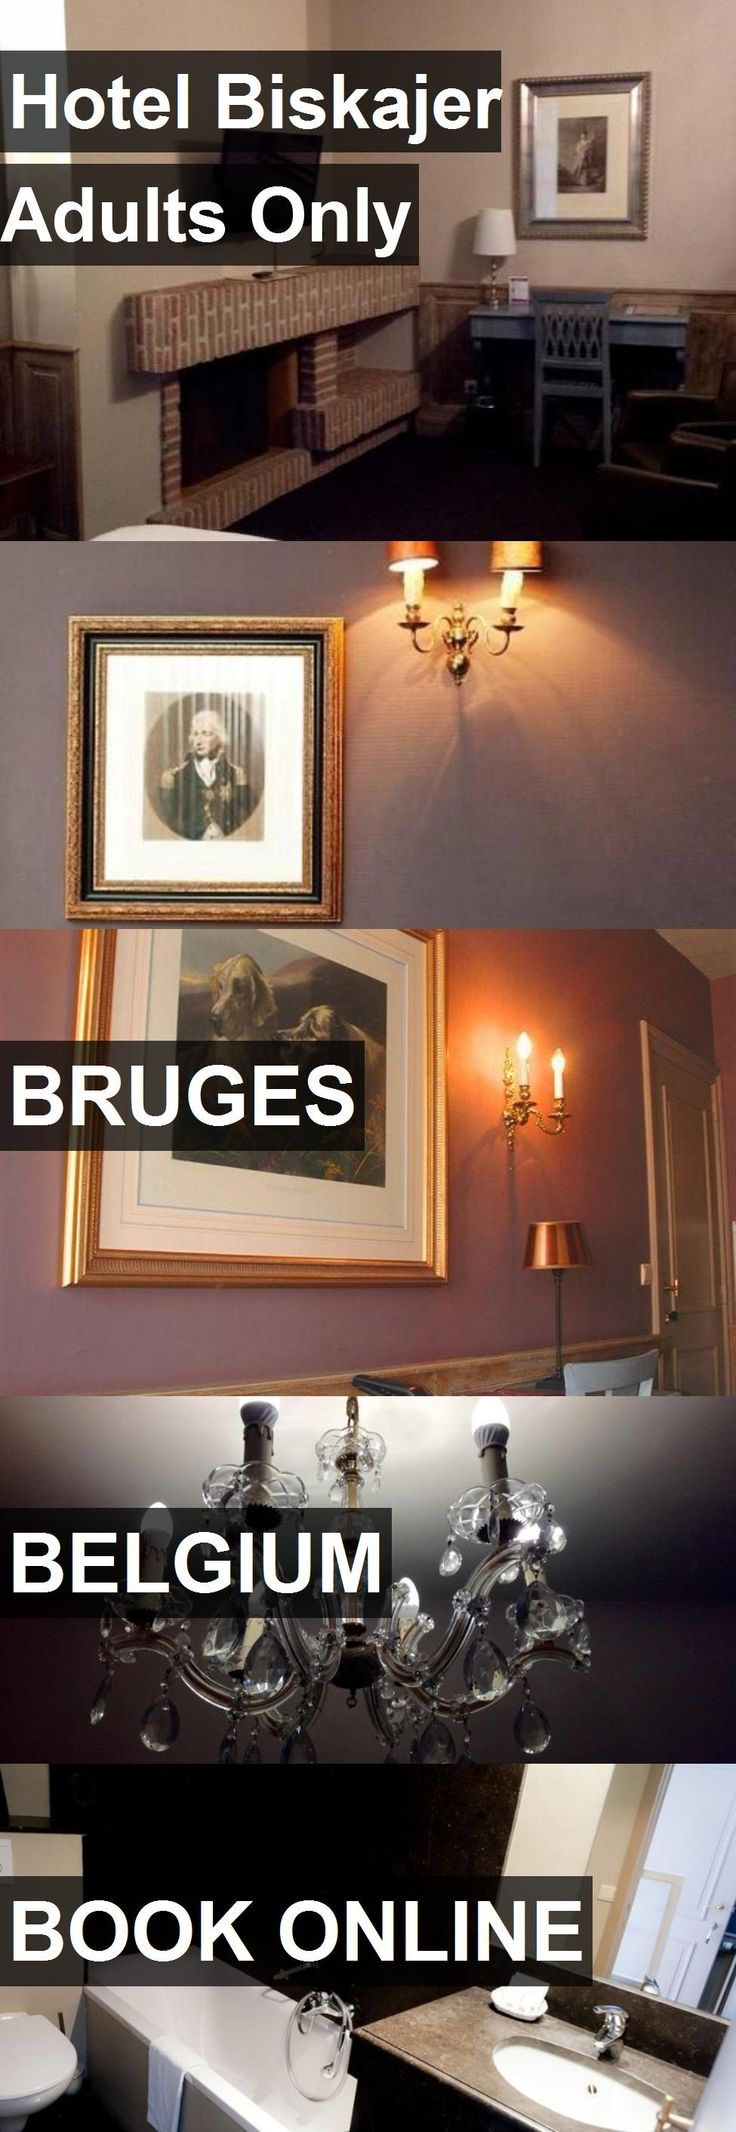 Hotel Biskajer Adults Only in Bruges, Belgium. For more information, photos, reviews and best prices please follow the link. #Belgium #Bruges #travel #vacation #hotel